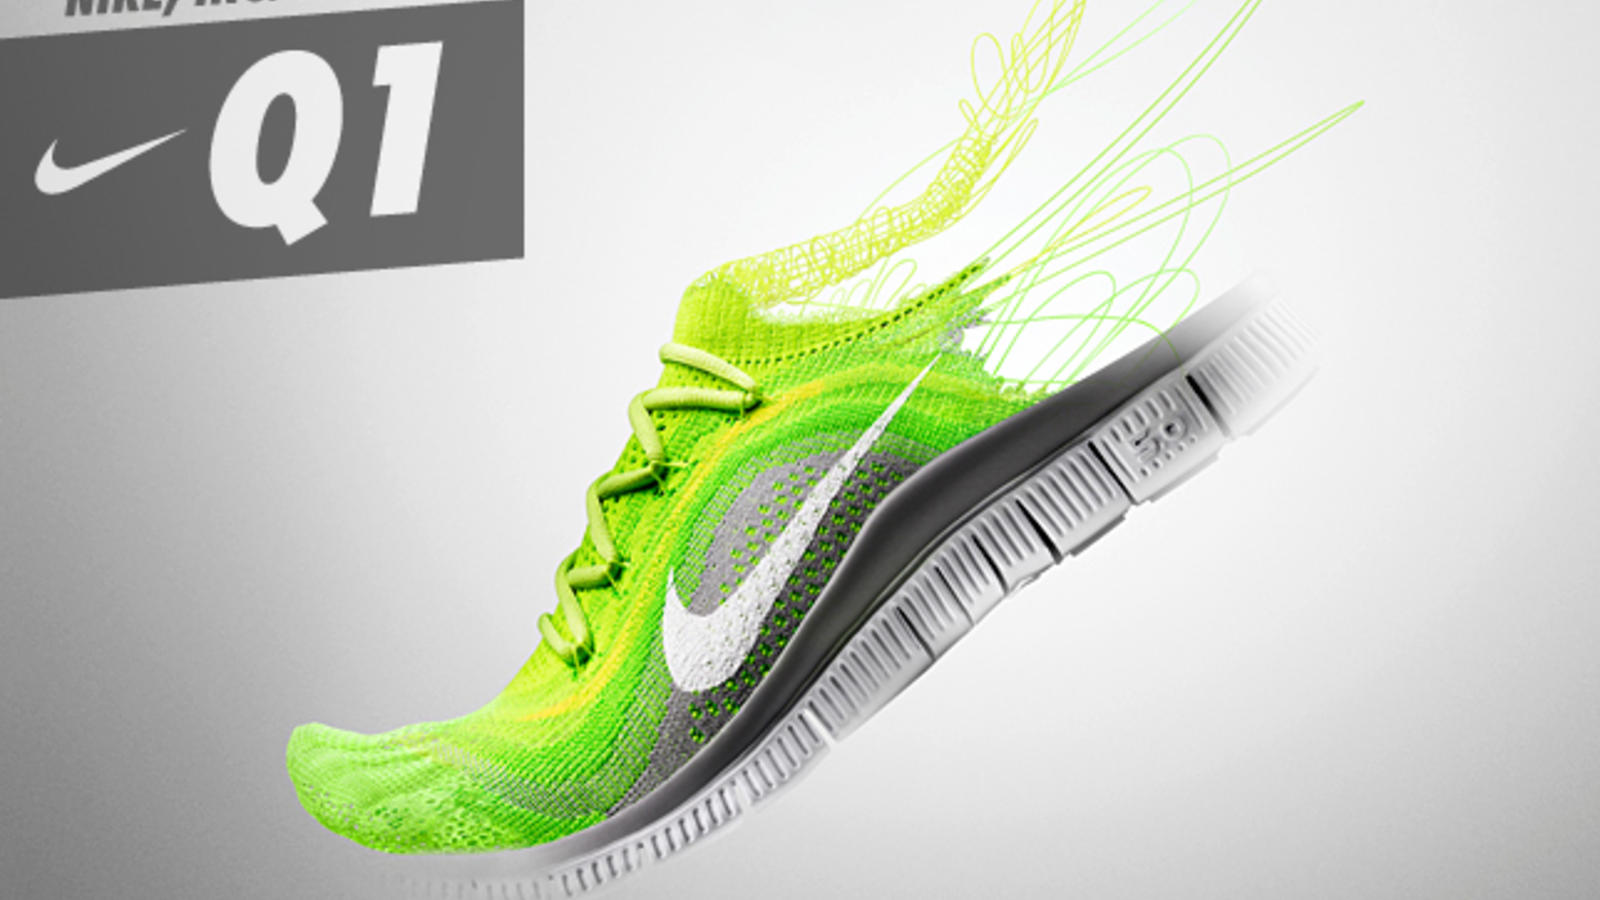 vino Alexander Graham Bell Mejorar  NIKE, INC. Reports Fiscal 2014 First Quarter Results - Nike News